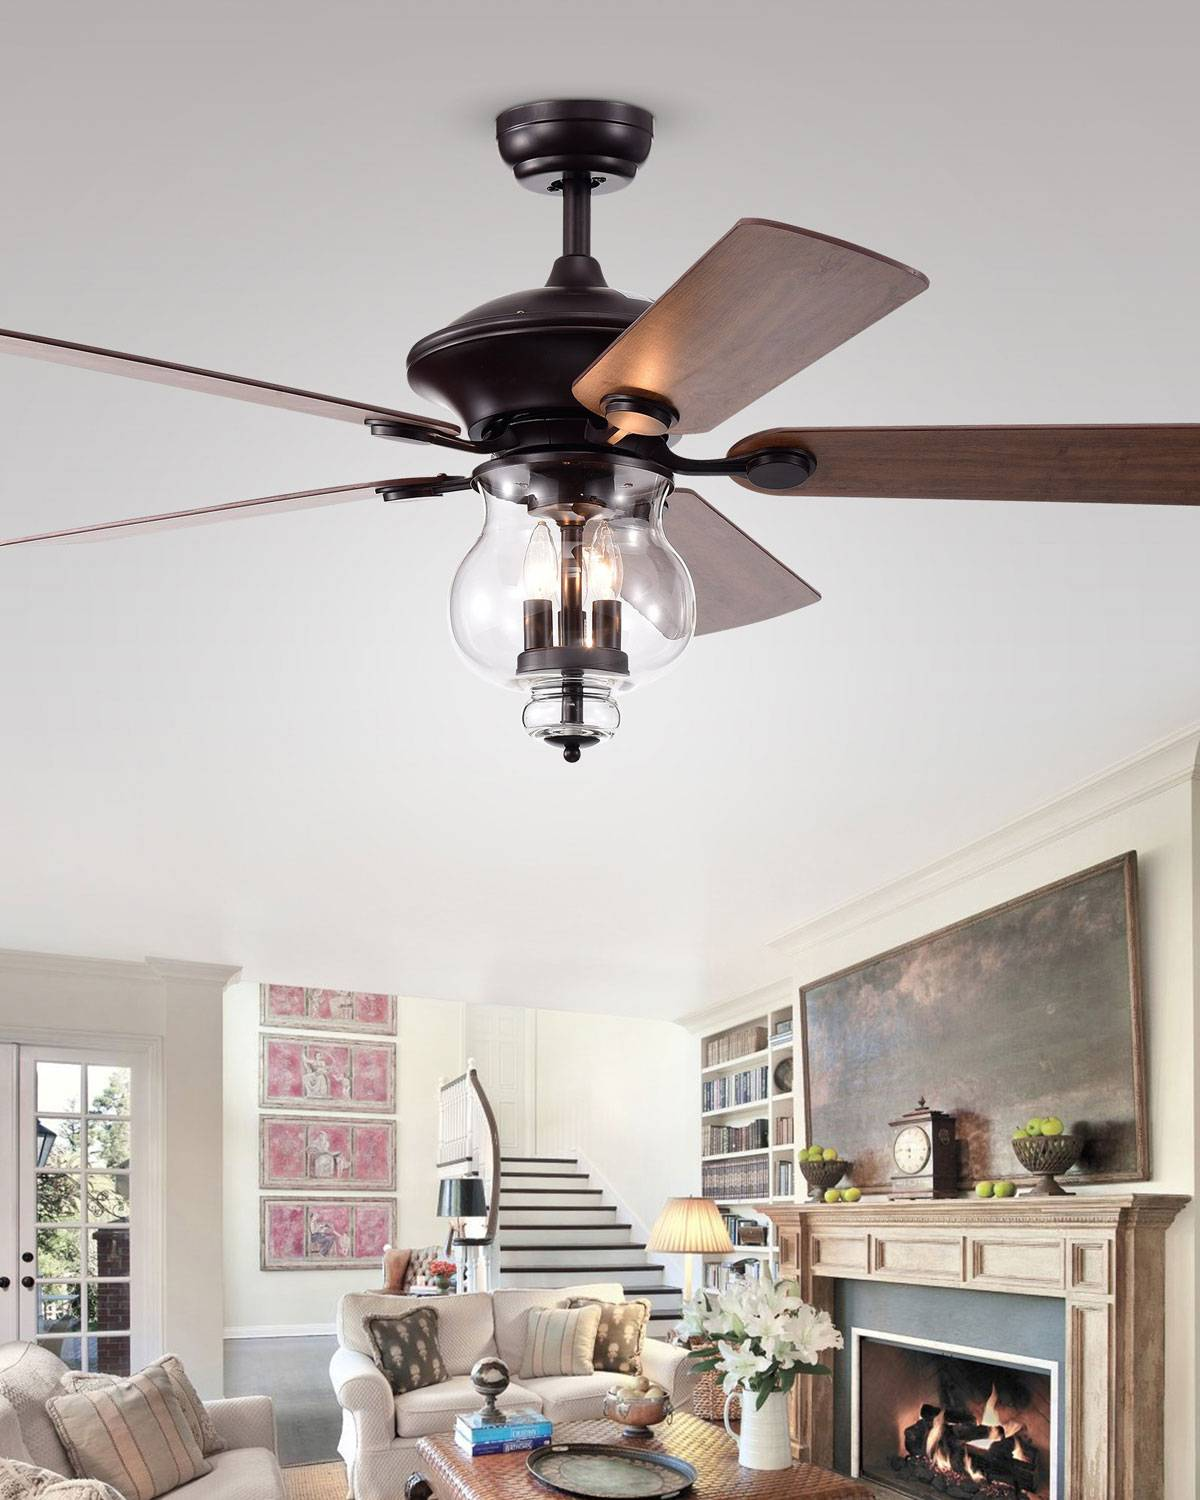 Home Accessories Glass Bowl Chandelier Ceiling Fan